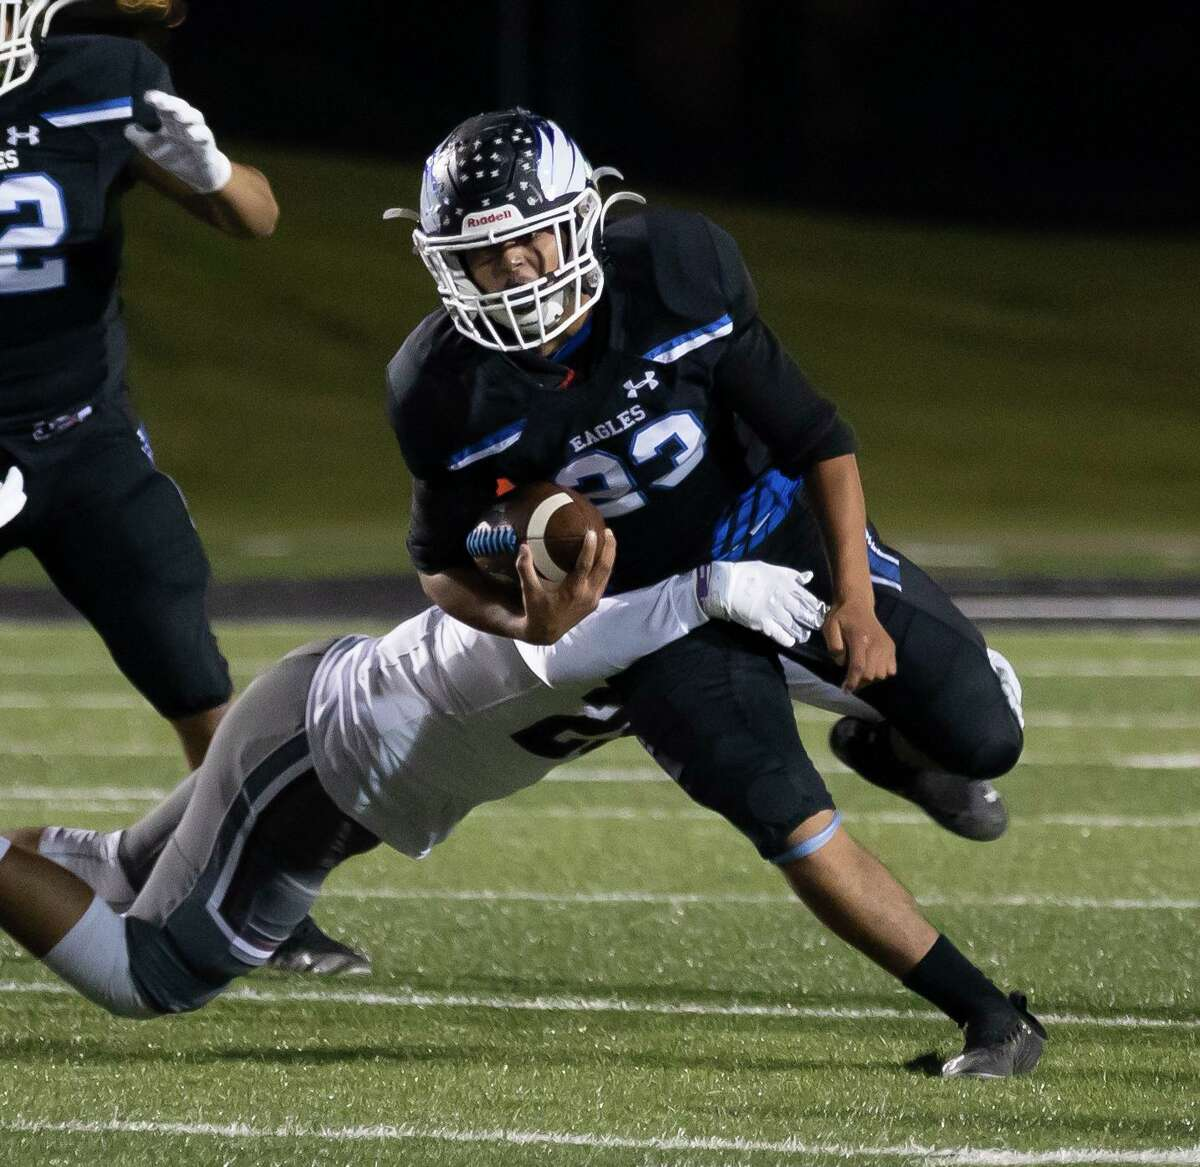 New Caney running back Sebastian Garza (23) is tackled by Magnolia linebacker Eliel Sandoval (25) during the first quarter of a District 8-5A (Div. I) football game at Randall Reed Stadium in New Caney.